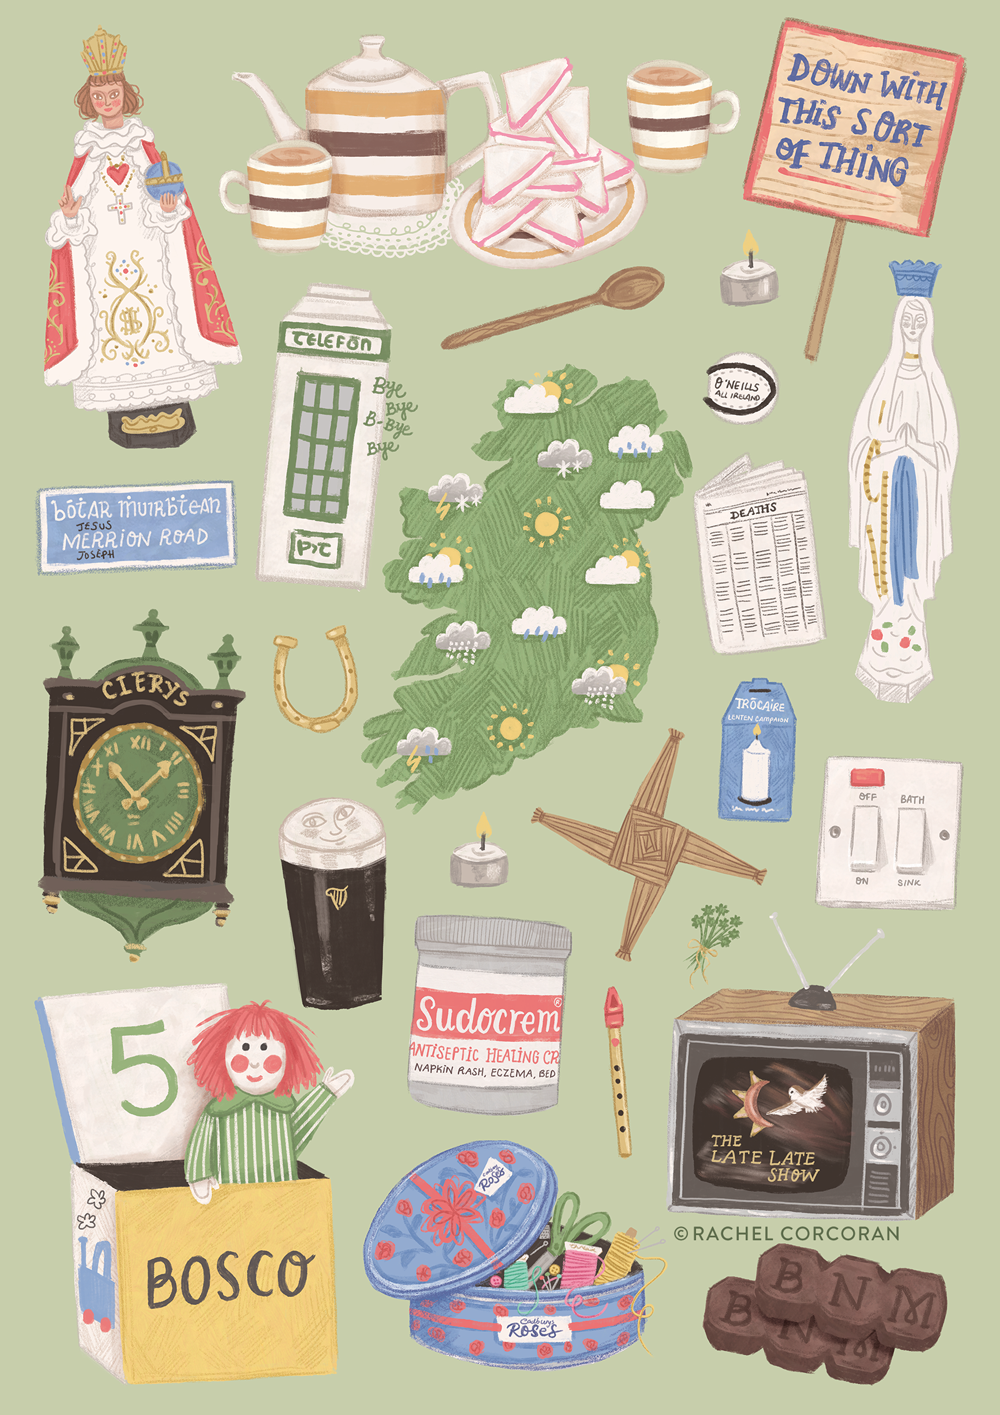 Home Sweet Home illustration by Rachel Corcoran